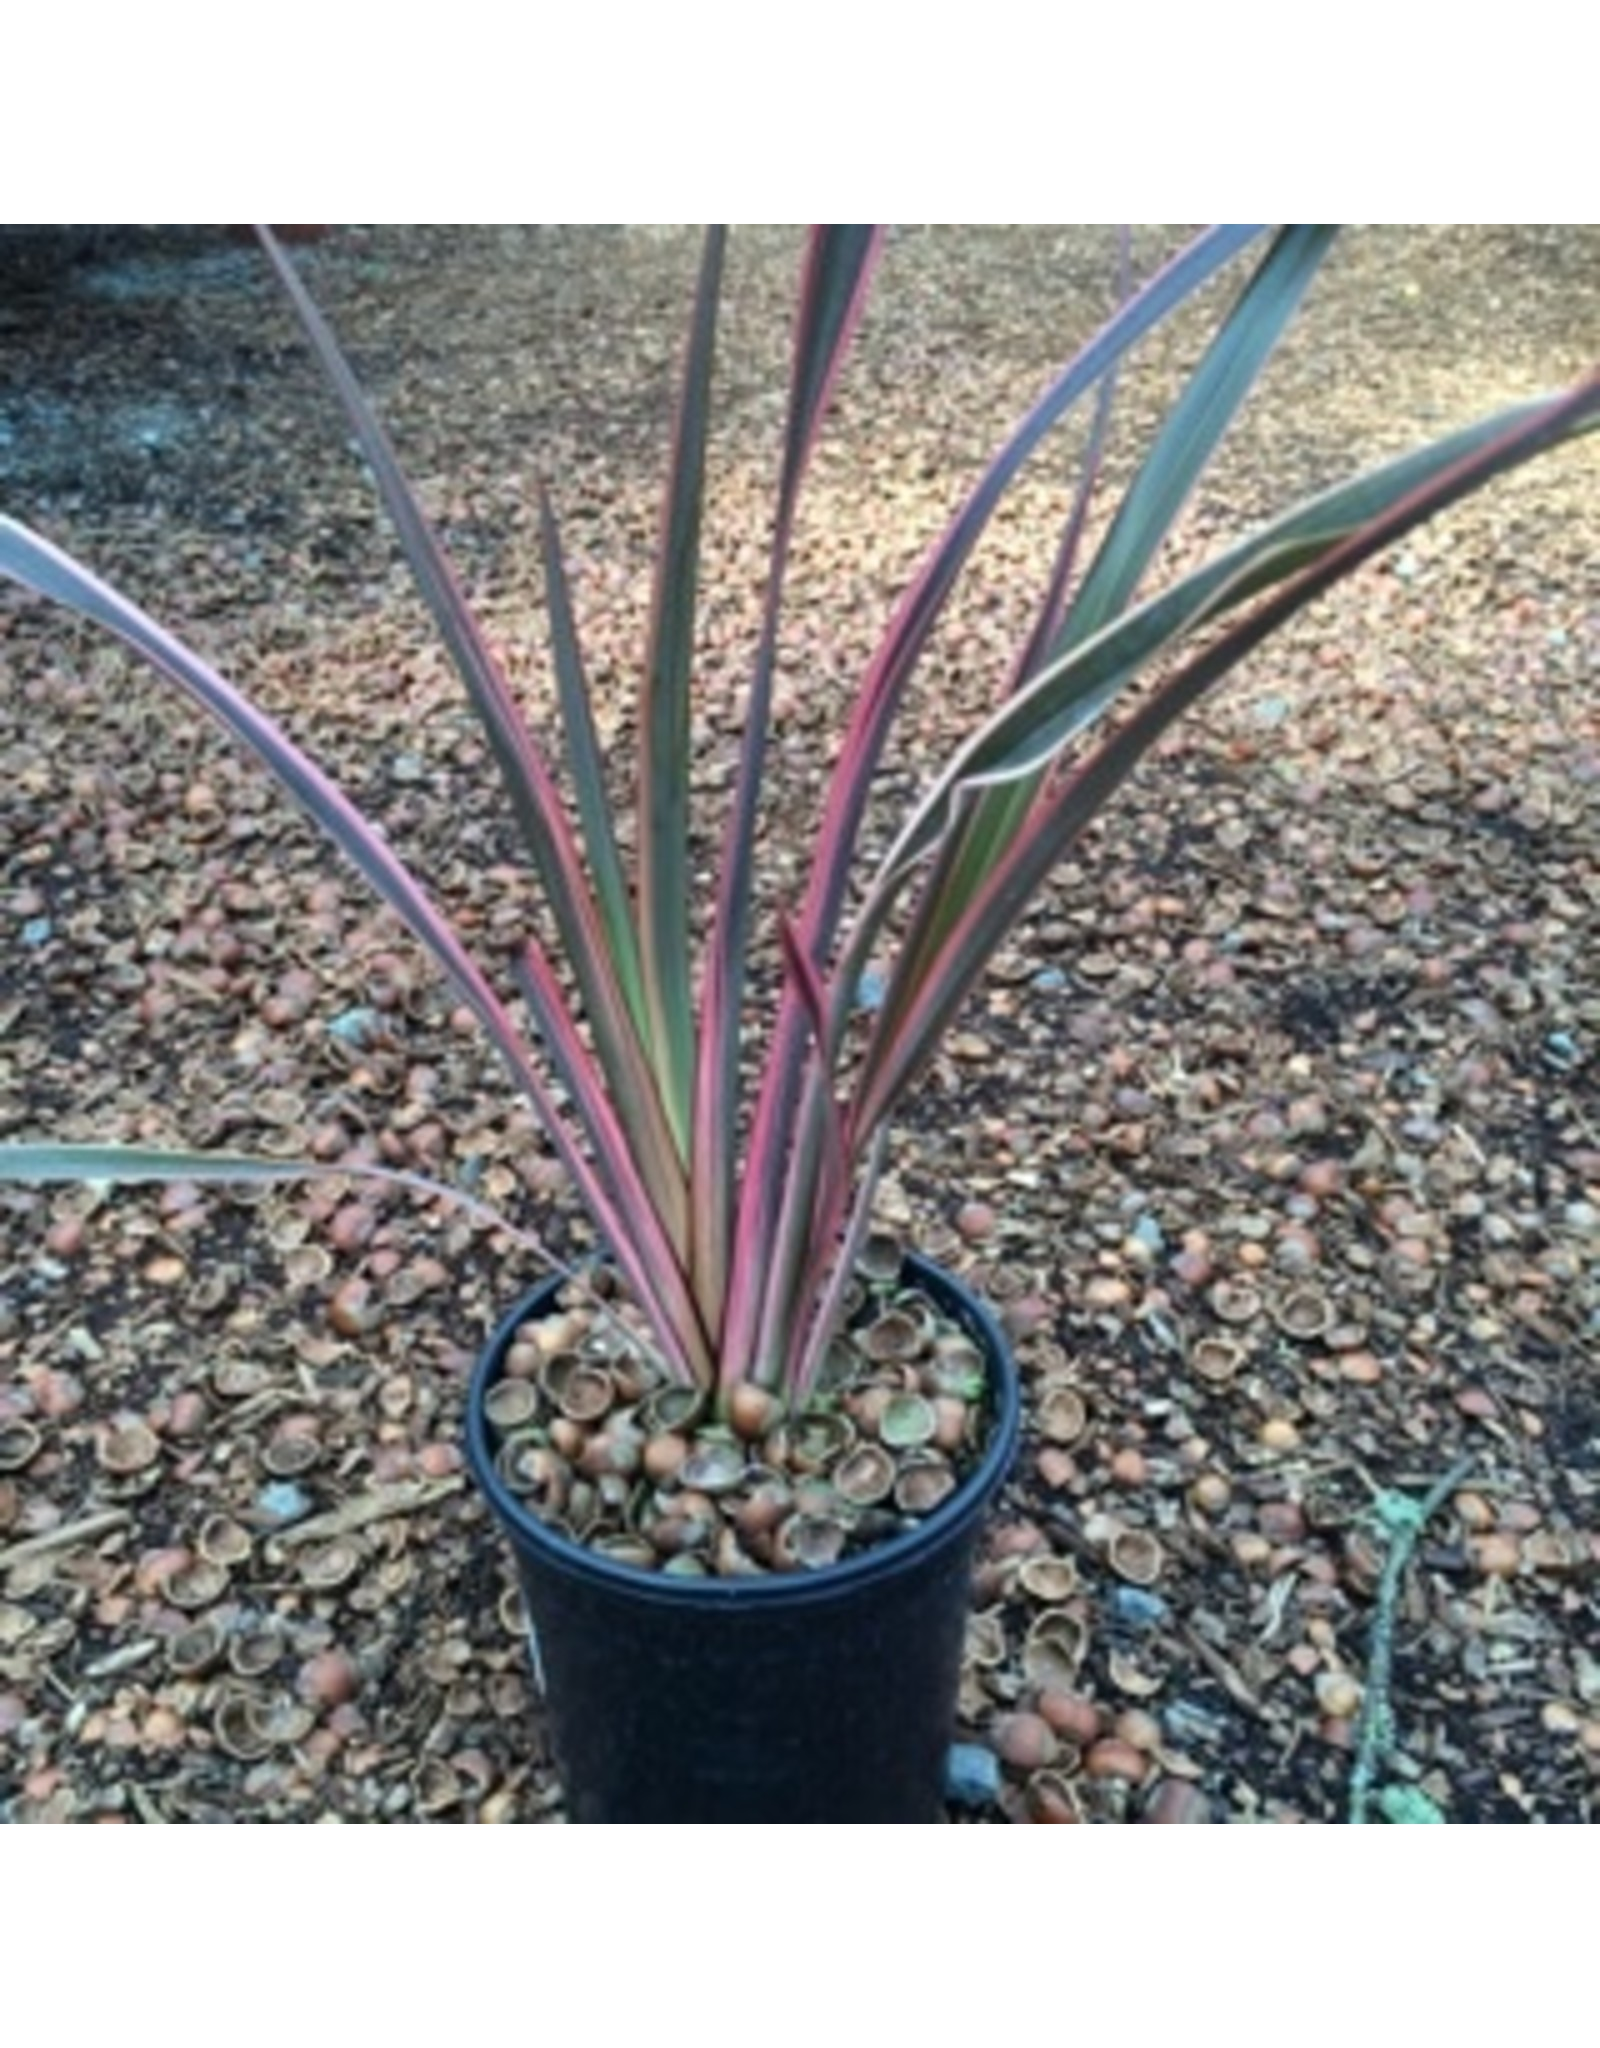 Phormium 'Rainbow Queen' 1 Gallon